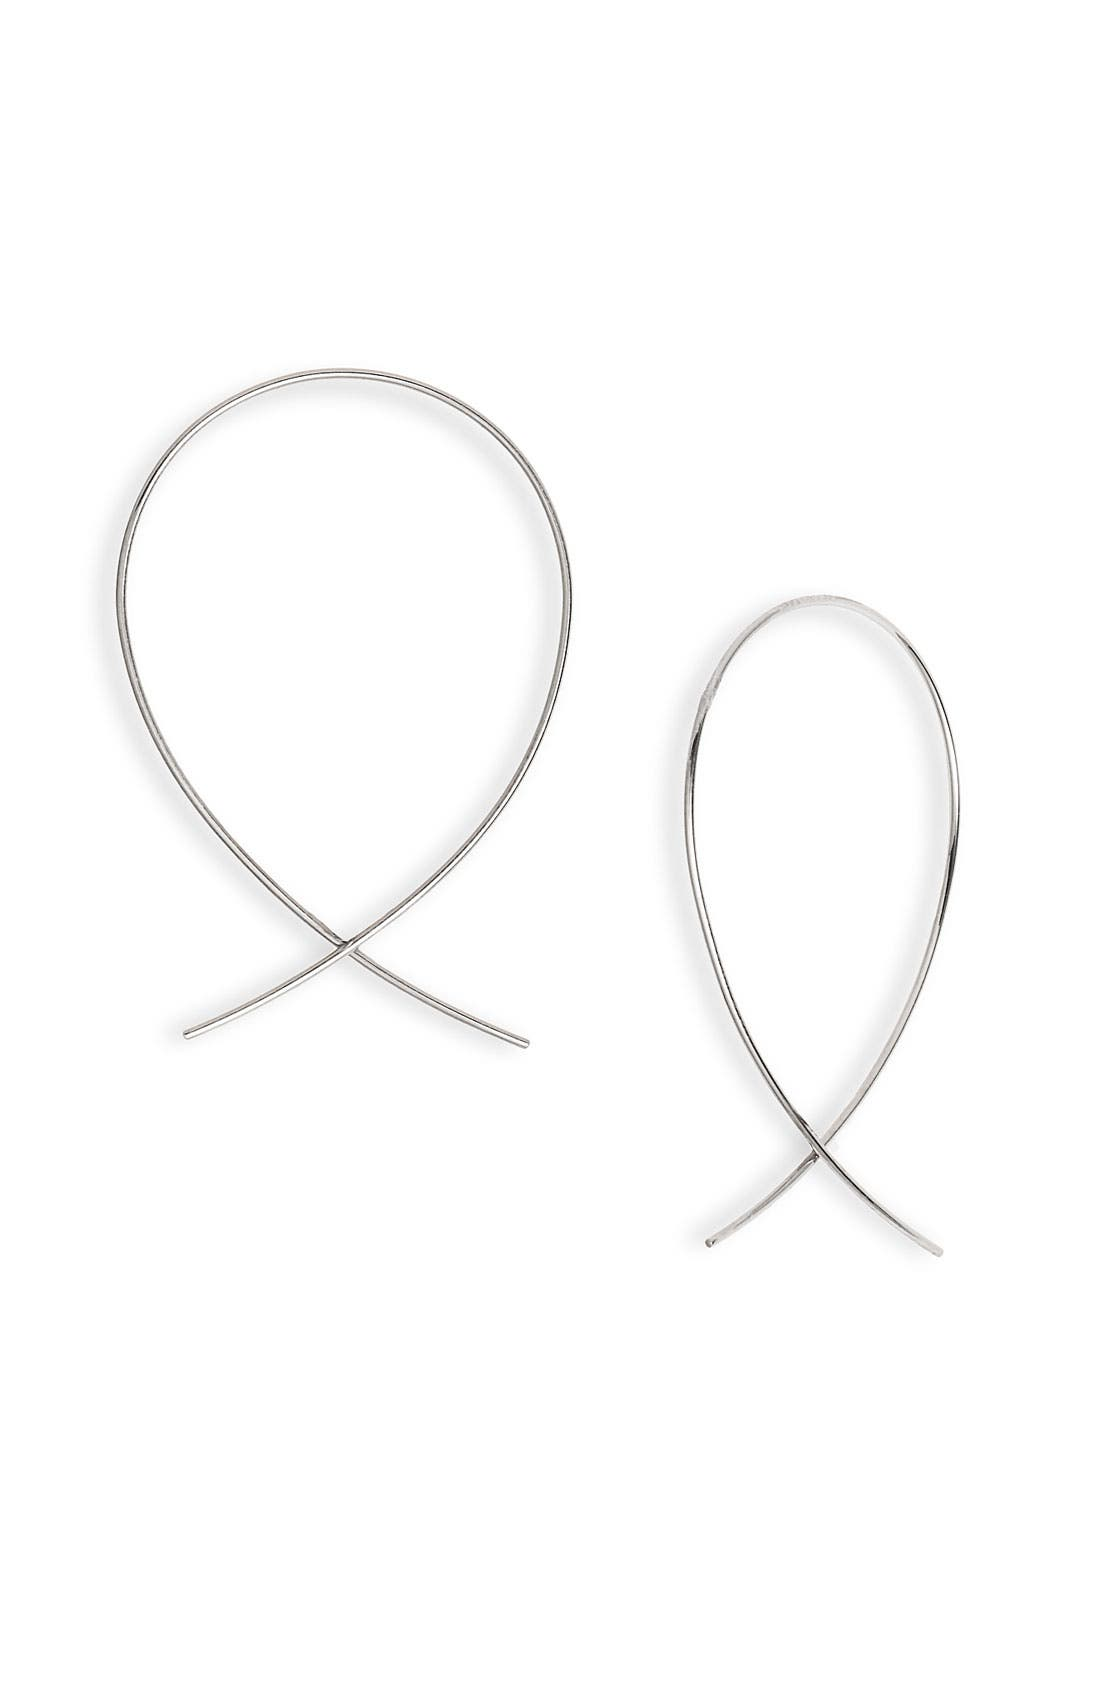 LANA JEWELRY, 'Upside Down' Small Hoop Earrings, Main thumbnail 1, color, WHITE GOLD